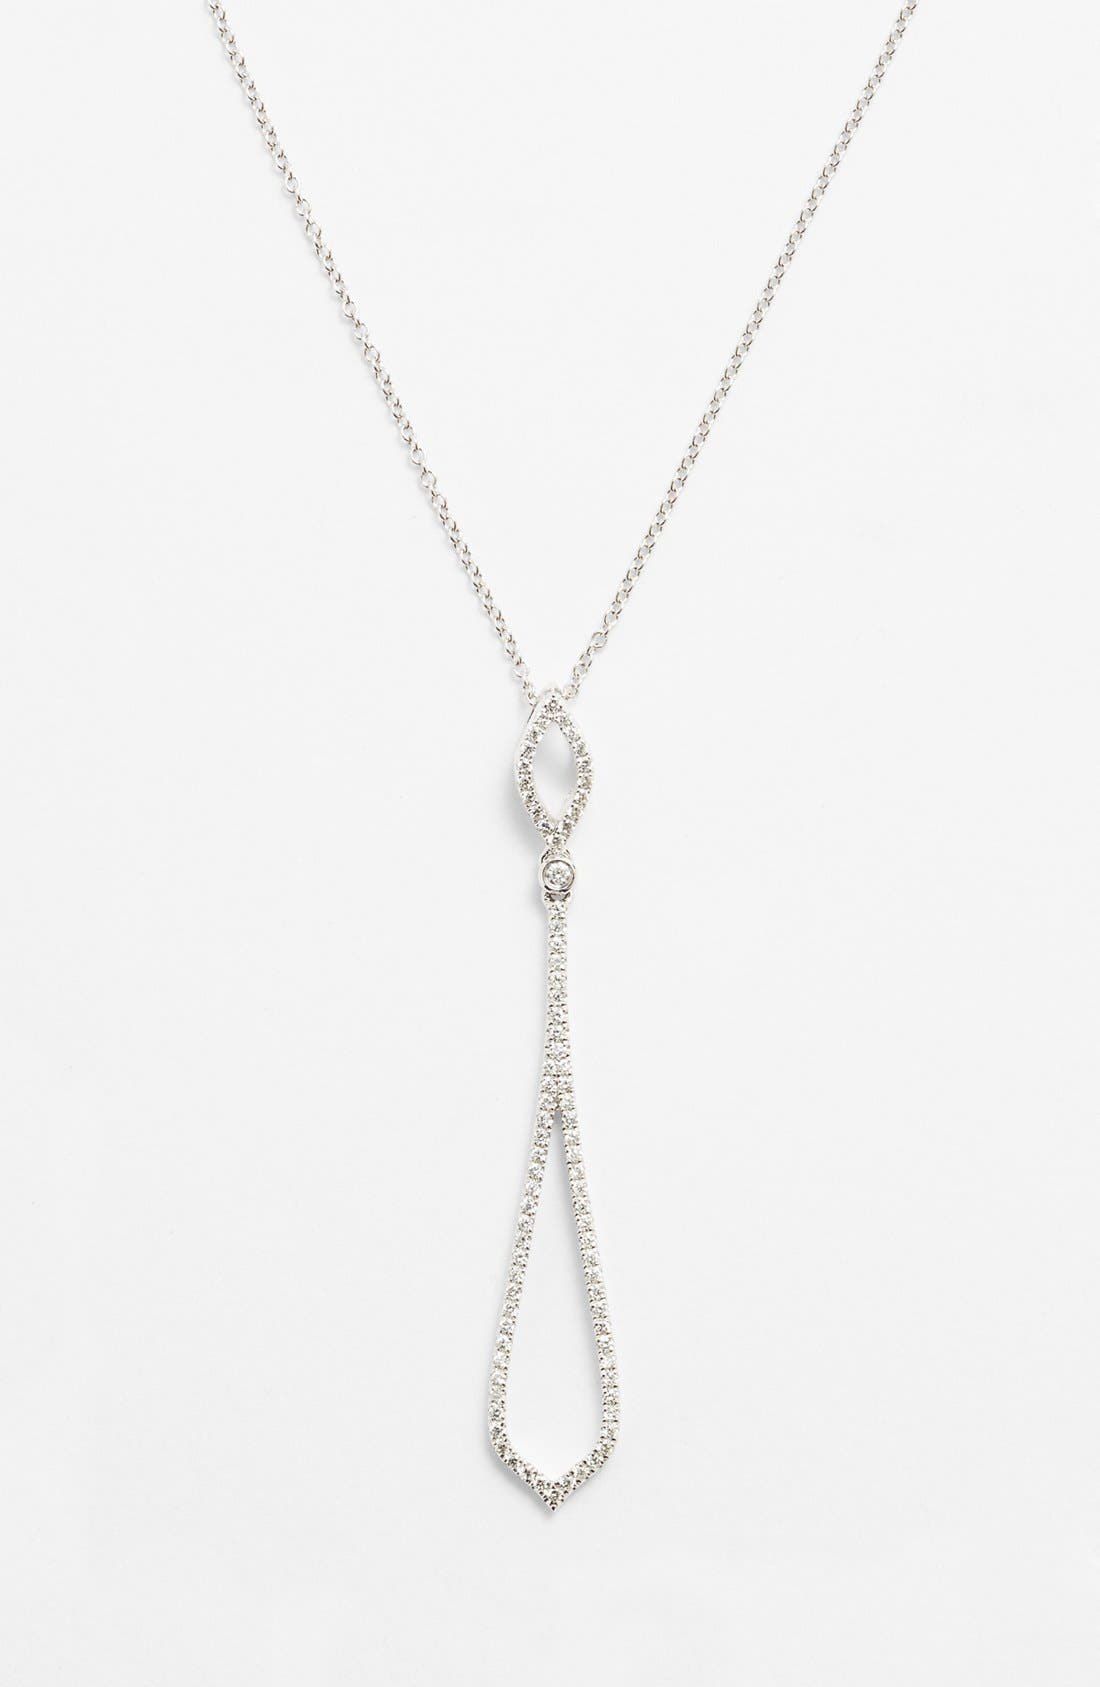 Alternate Image 1 Selected - Bony Levy Pavé Diamond Pendant Necklace (Nordstrom Exclusive)